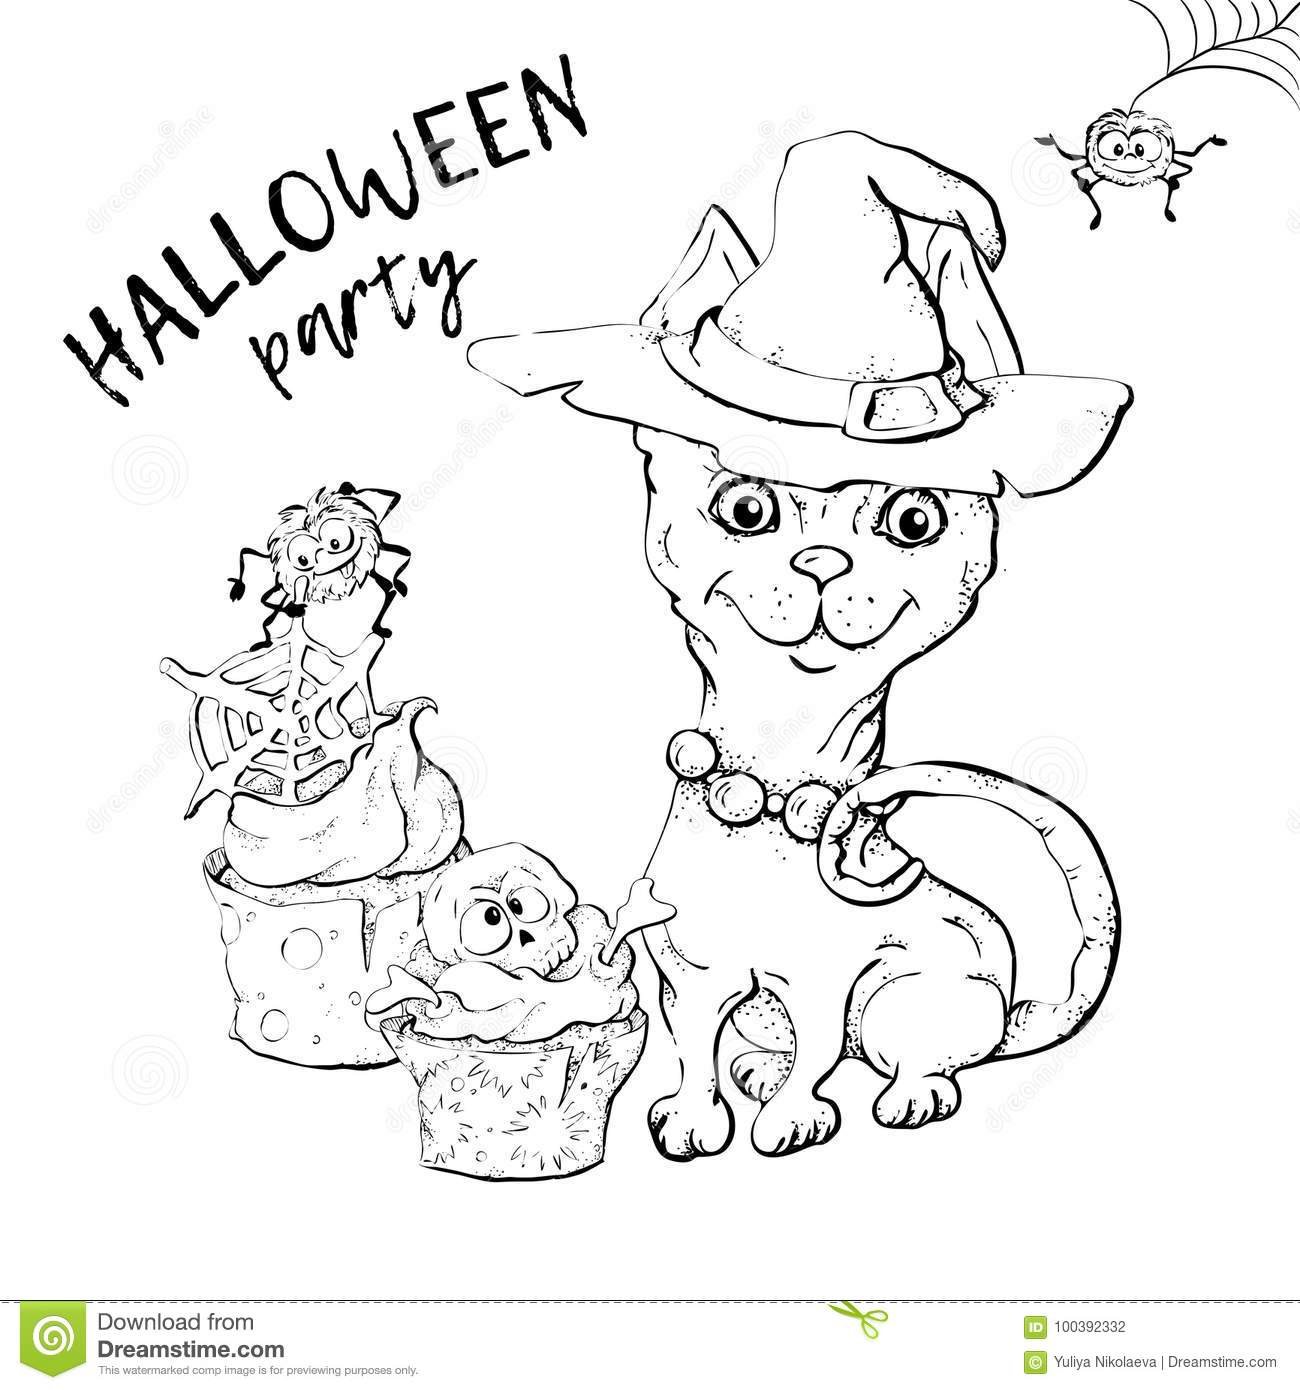 download cute black kitten and dog wearing funny and fancy halloween hats laying with an illuminated